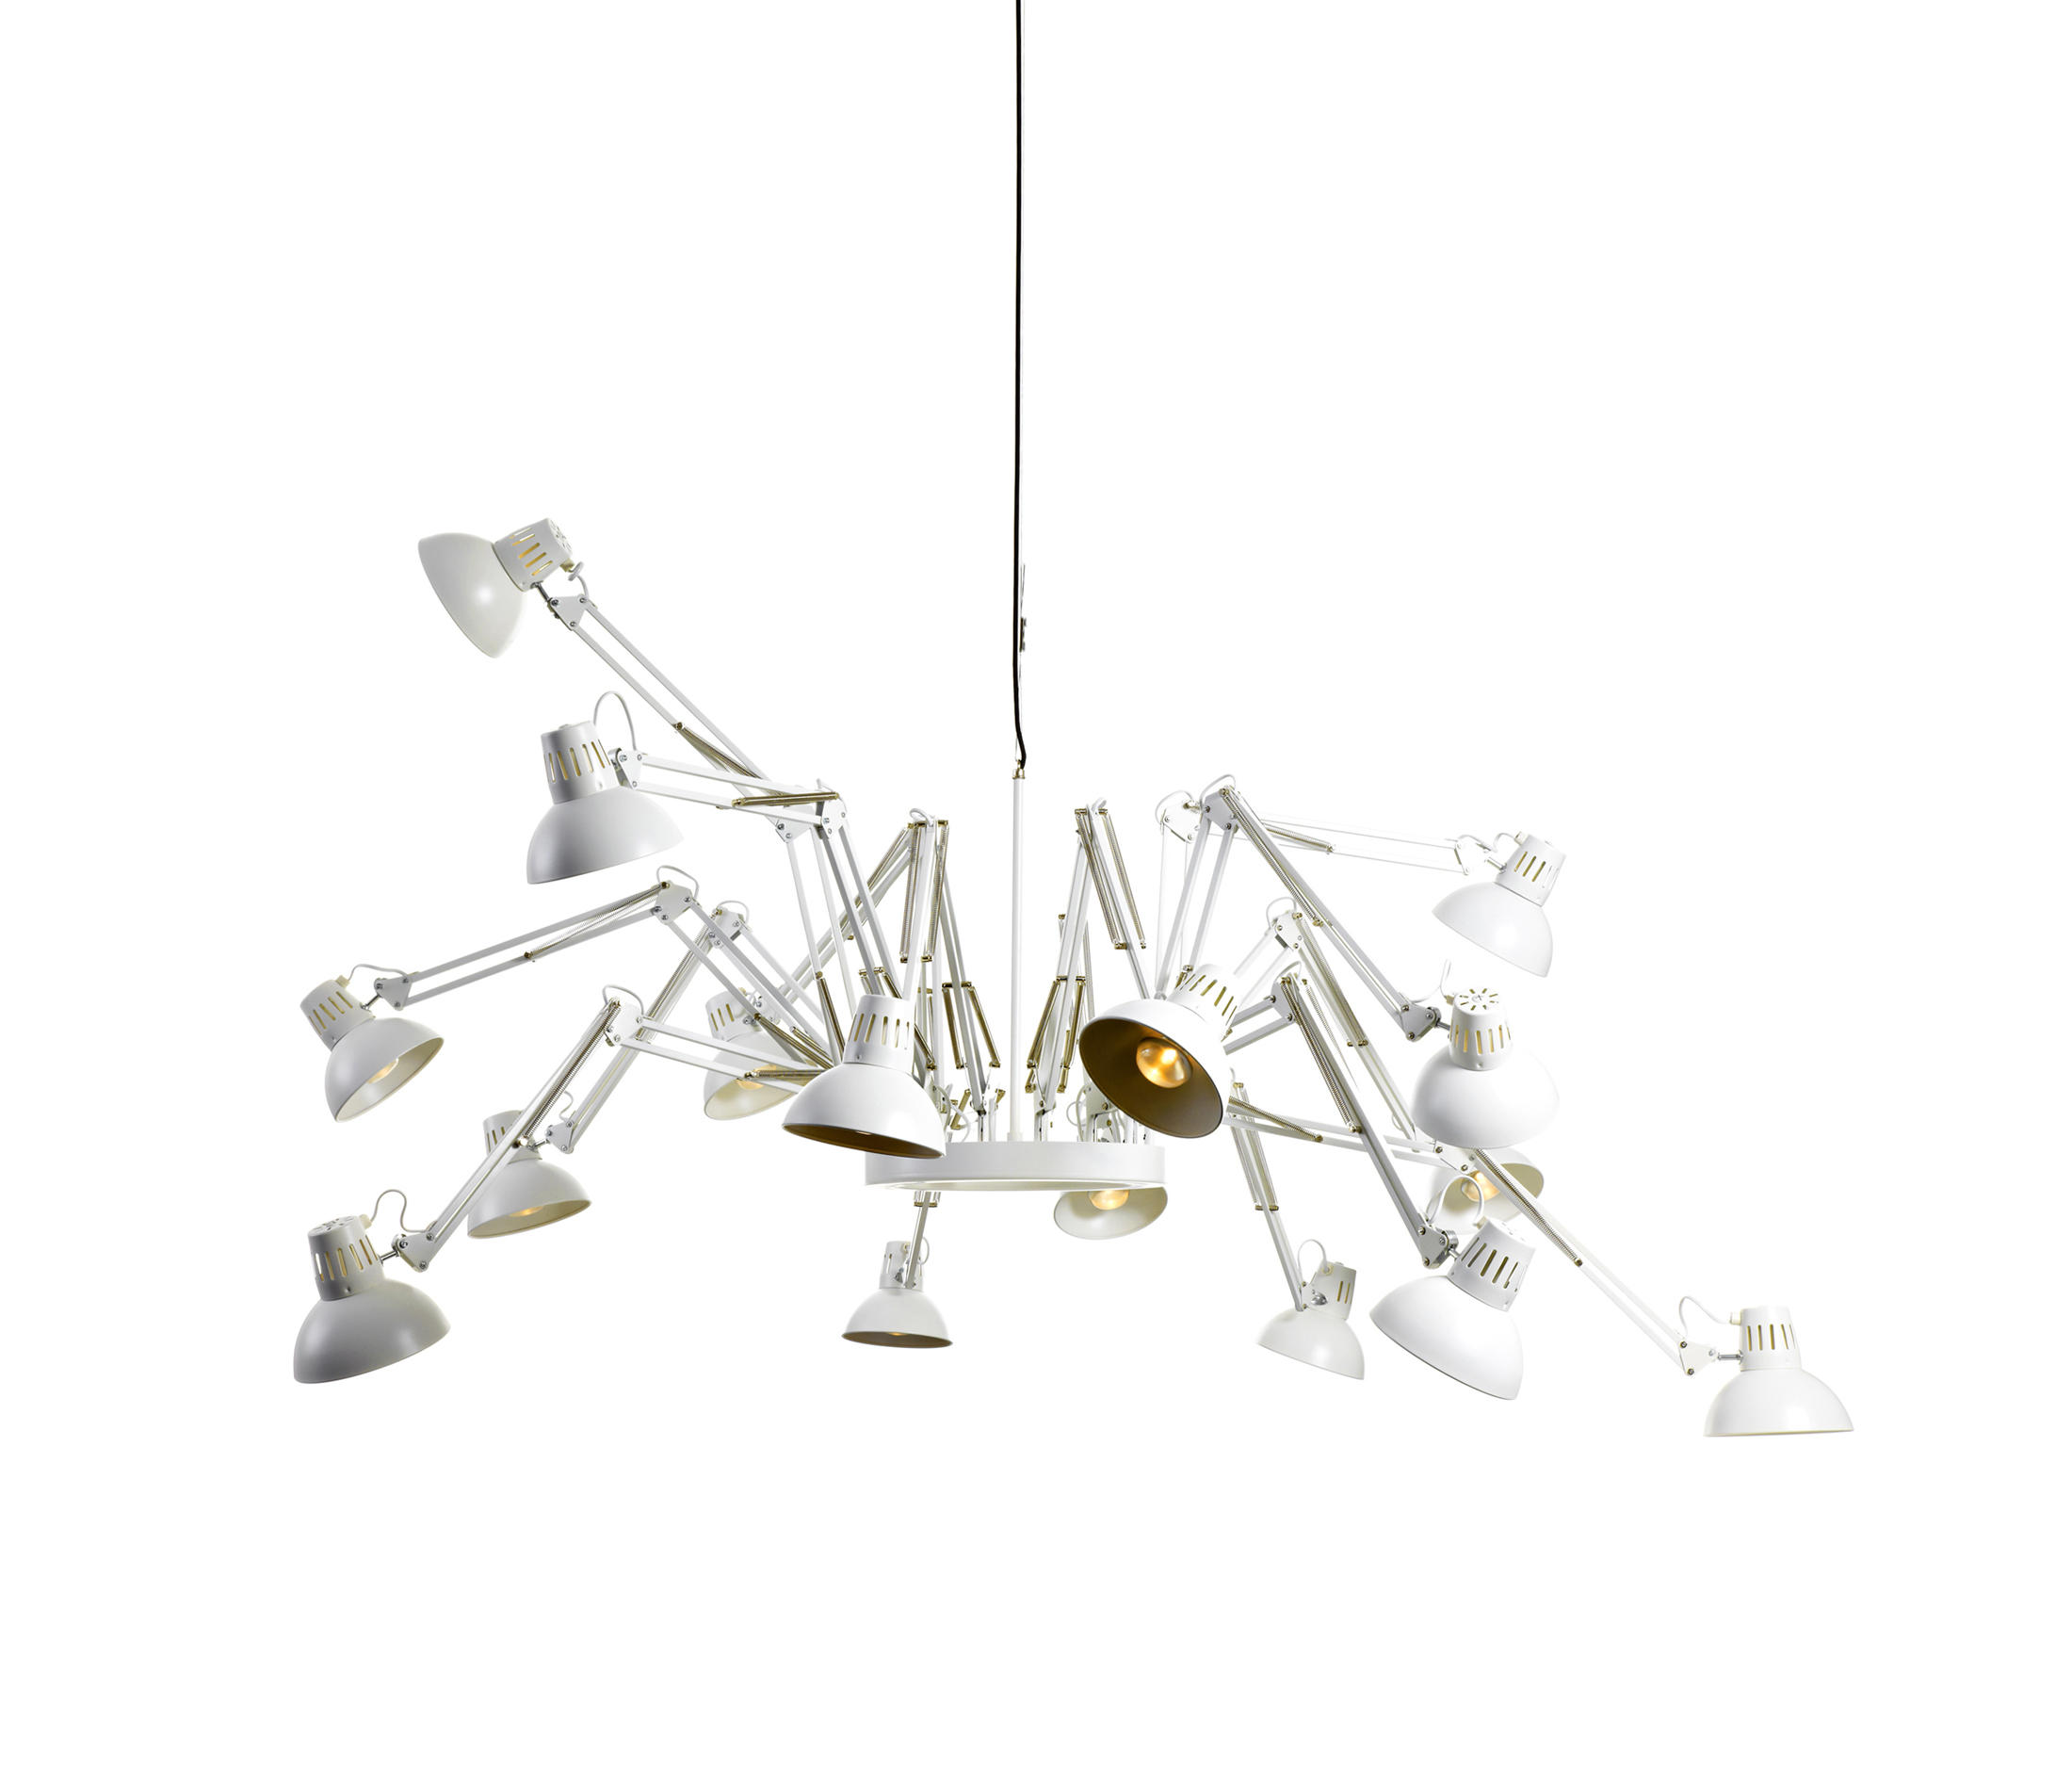 ... dear ingo Pendant light by moooi | Suspended lights ...  sc 1 st  Architonic & DEAR INGO PENDANT LIGHT - Suspended lights from moooi | Architonic